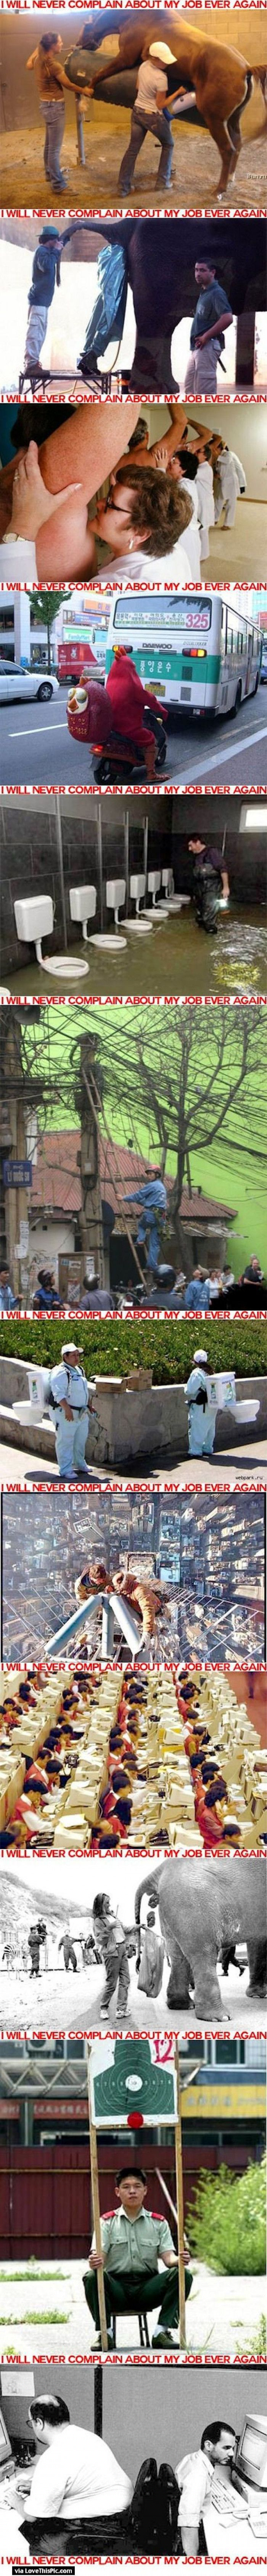 12 Images To Make You Never Complain About Your Job Again